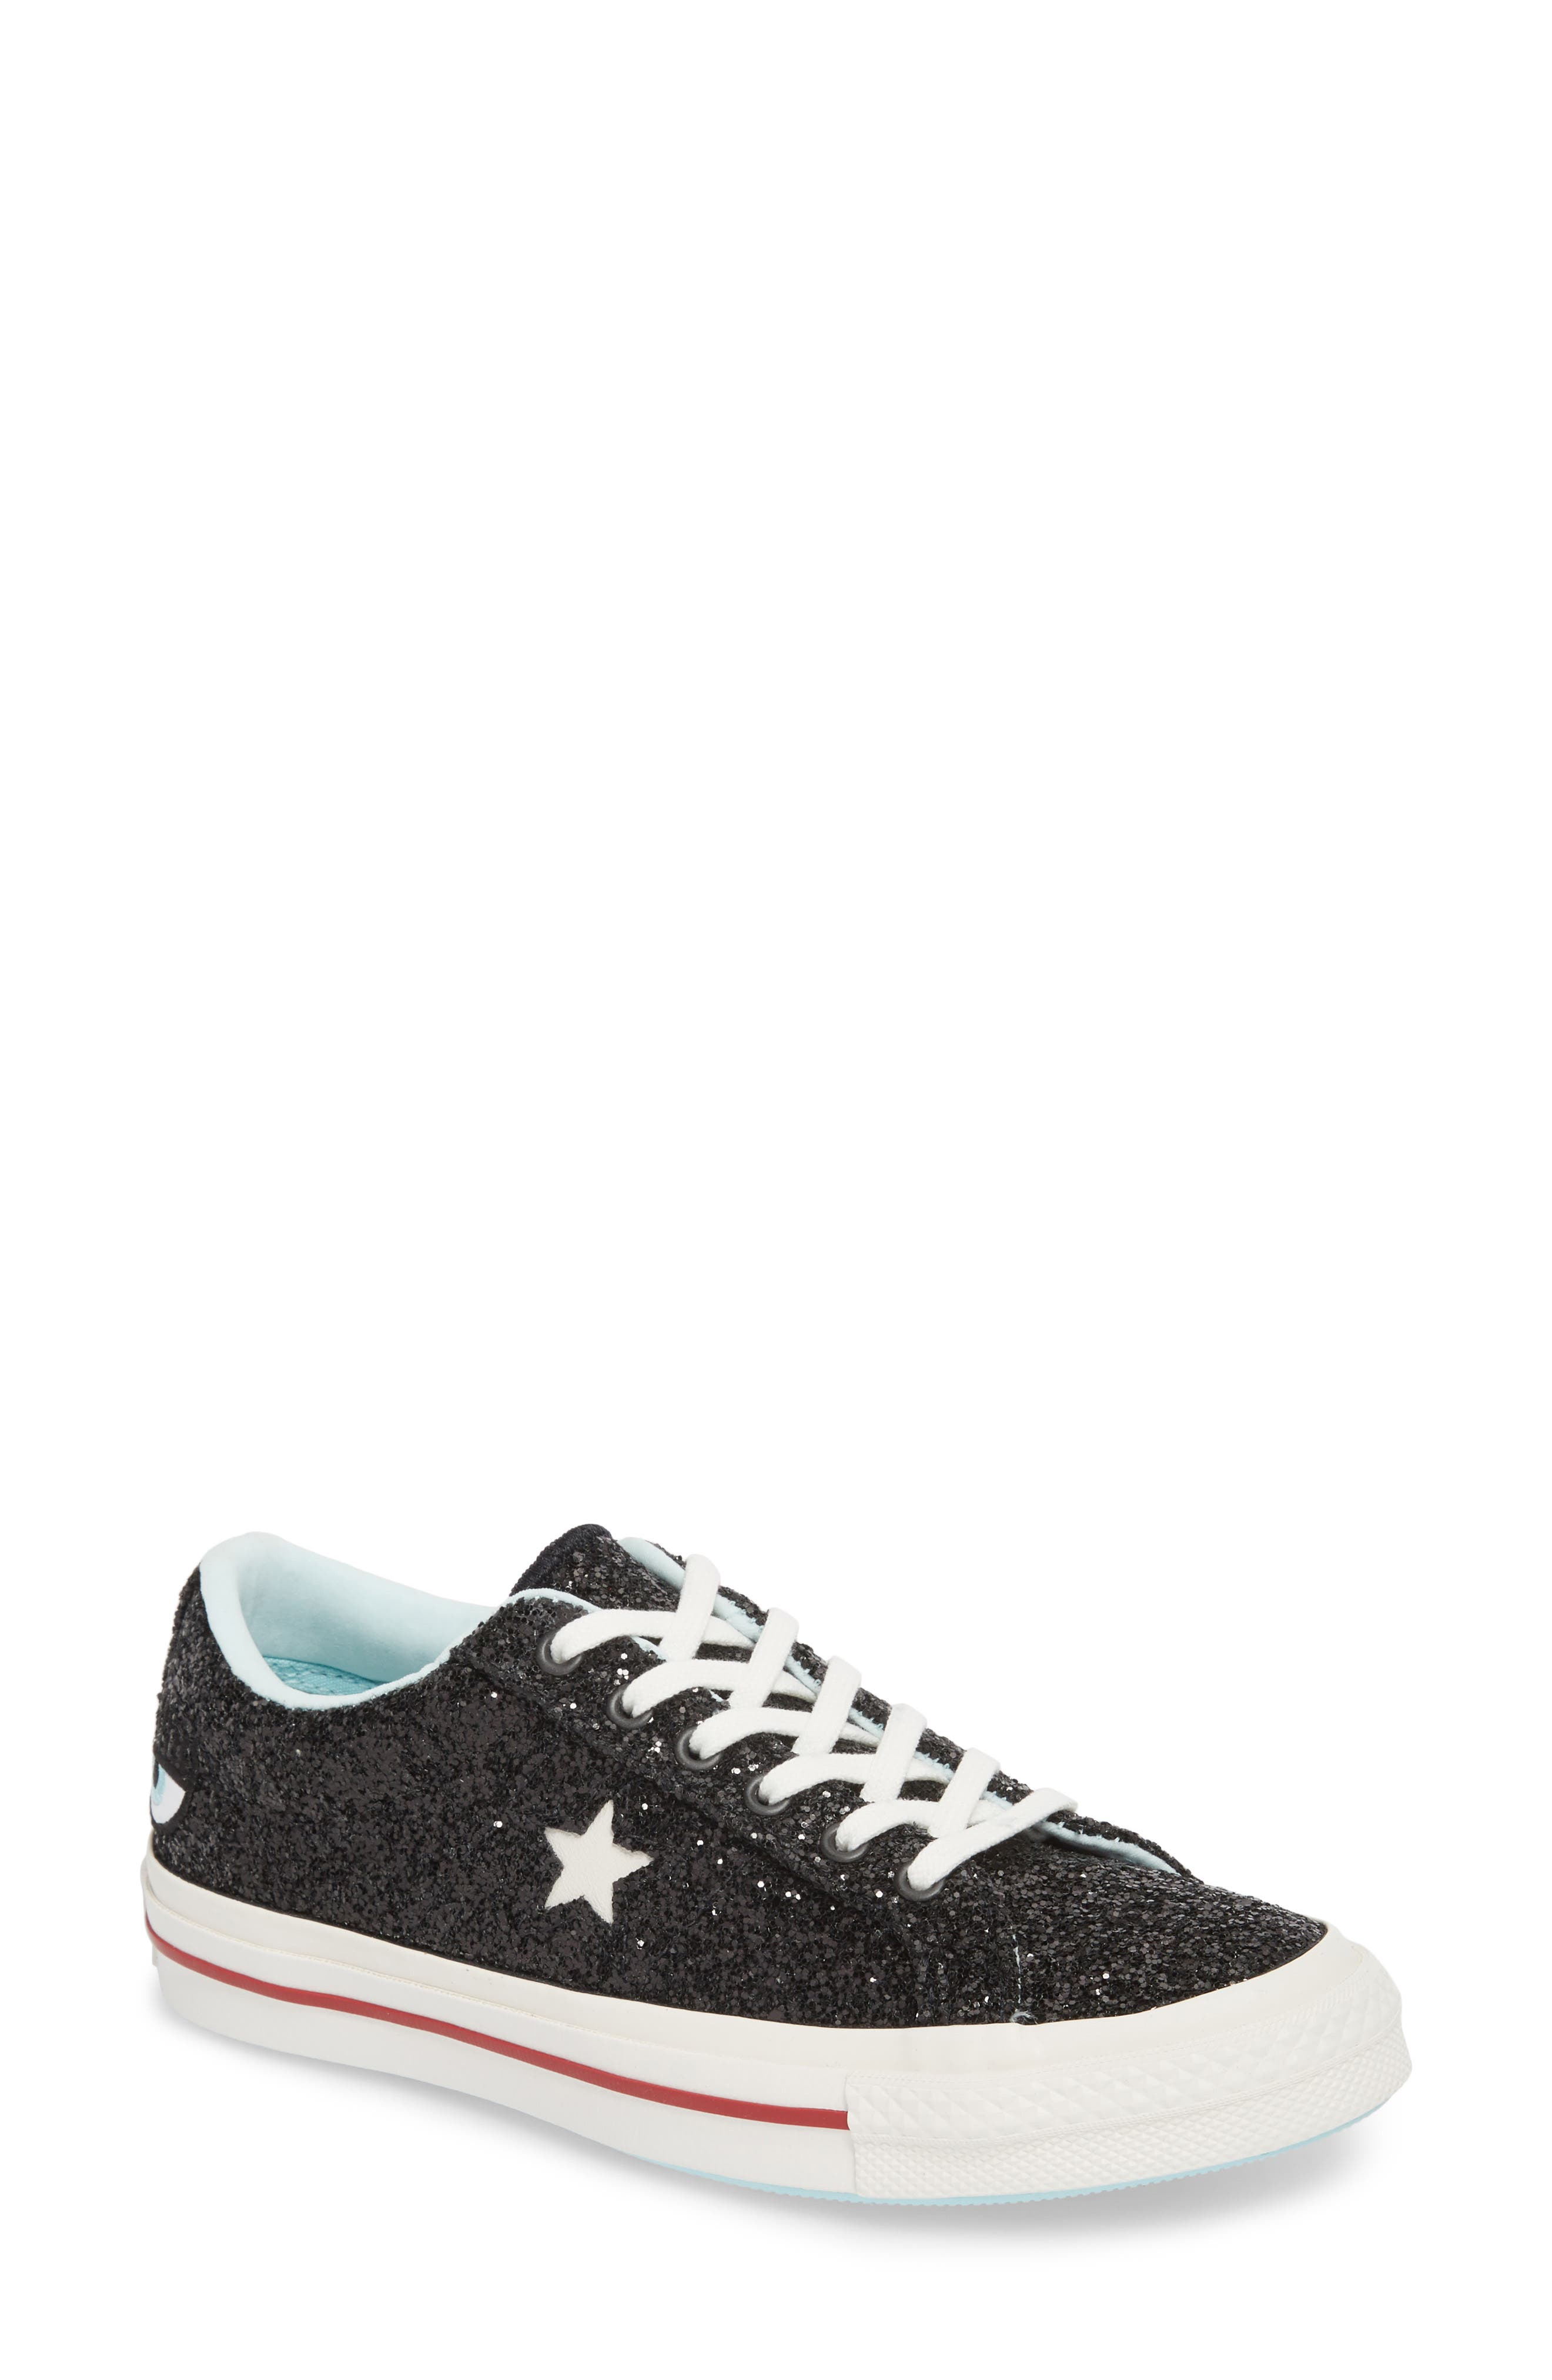 x Chiara Ferragni One Star Ox Sneaker,                             Main thumbnail 1, color,                             001